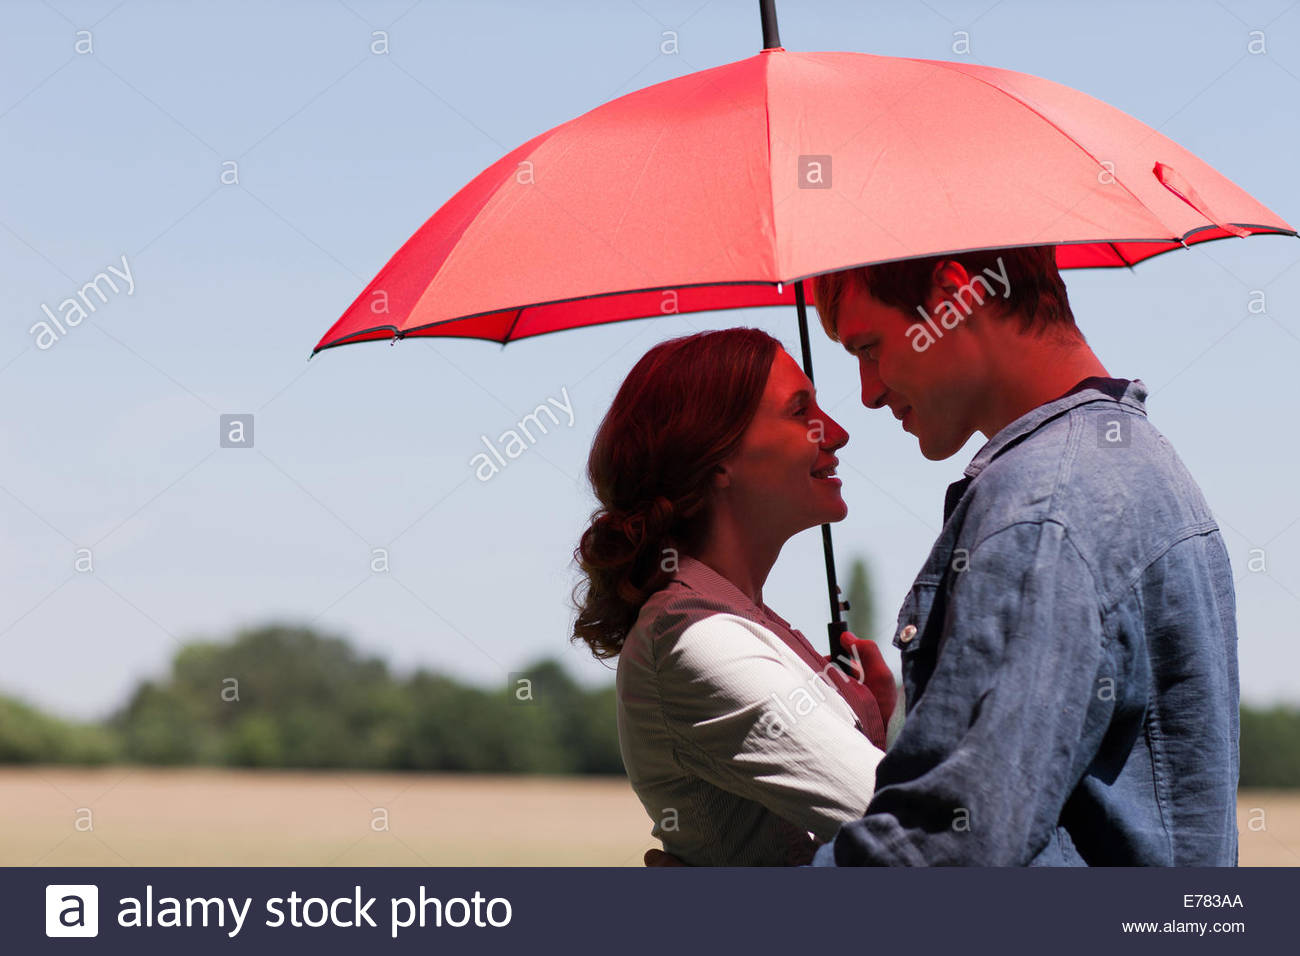 Couple hugging underneath red umbrella - Stock Image